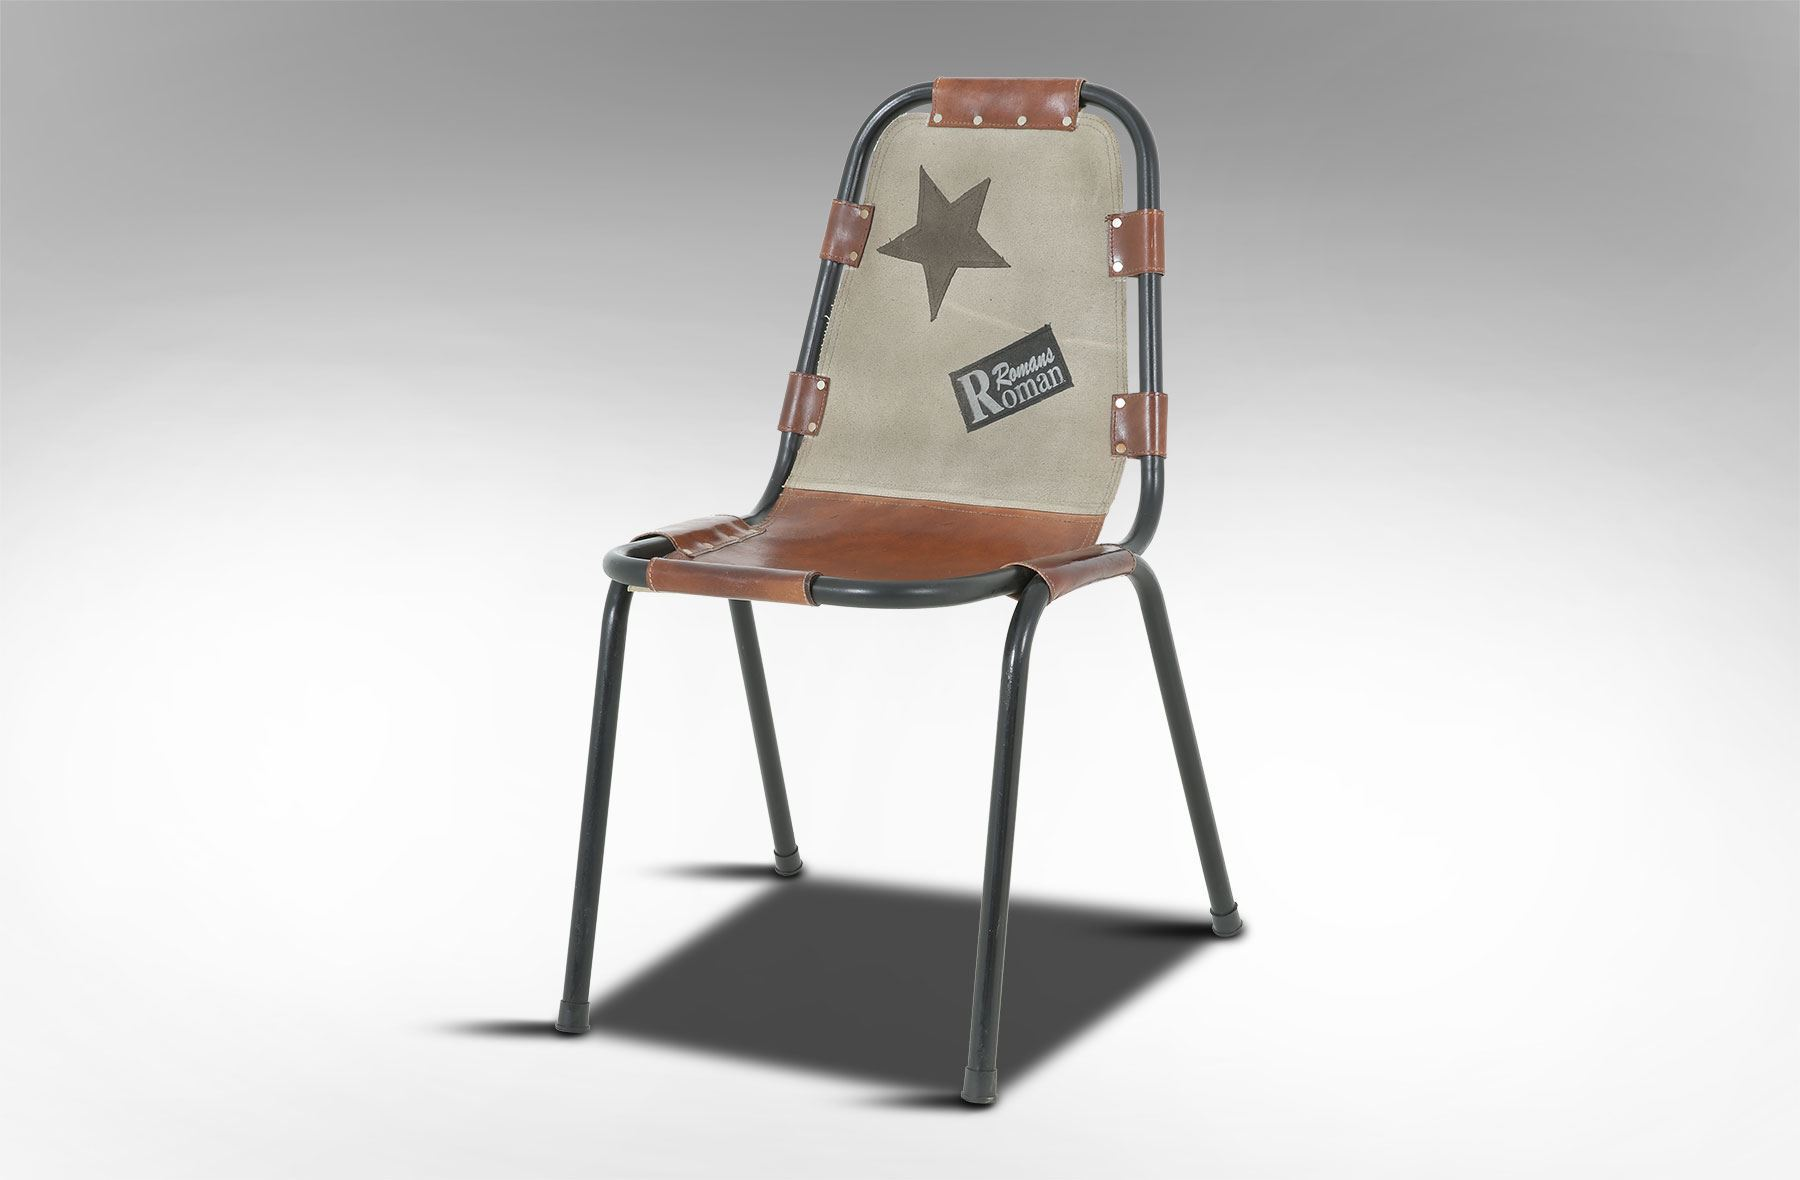 rice furniture star chair - picture of star chair